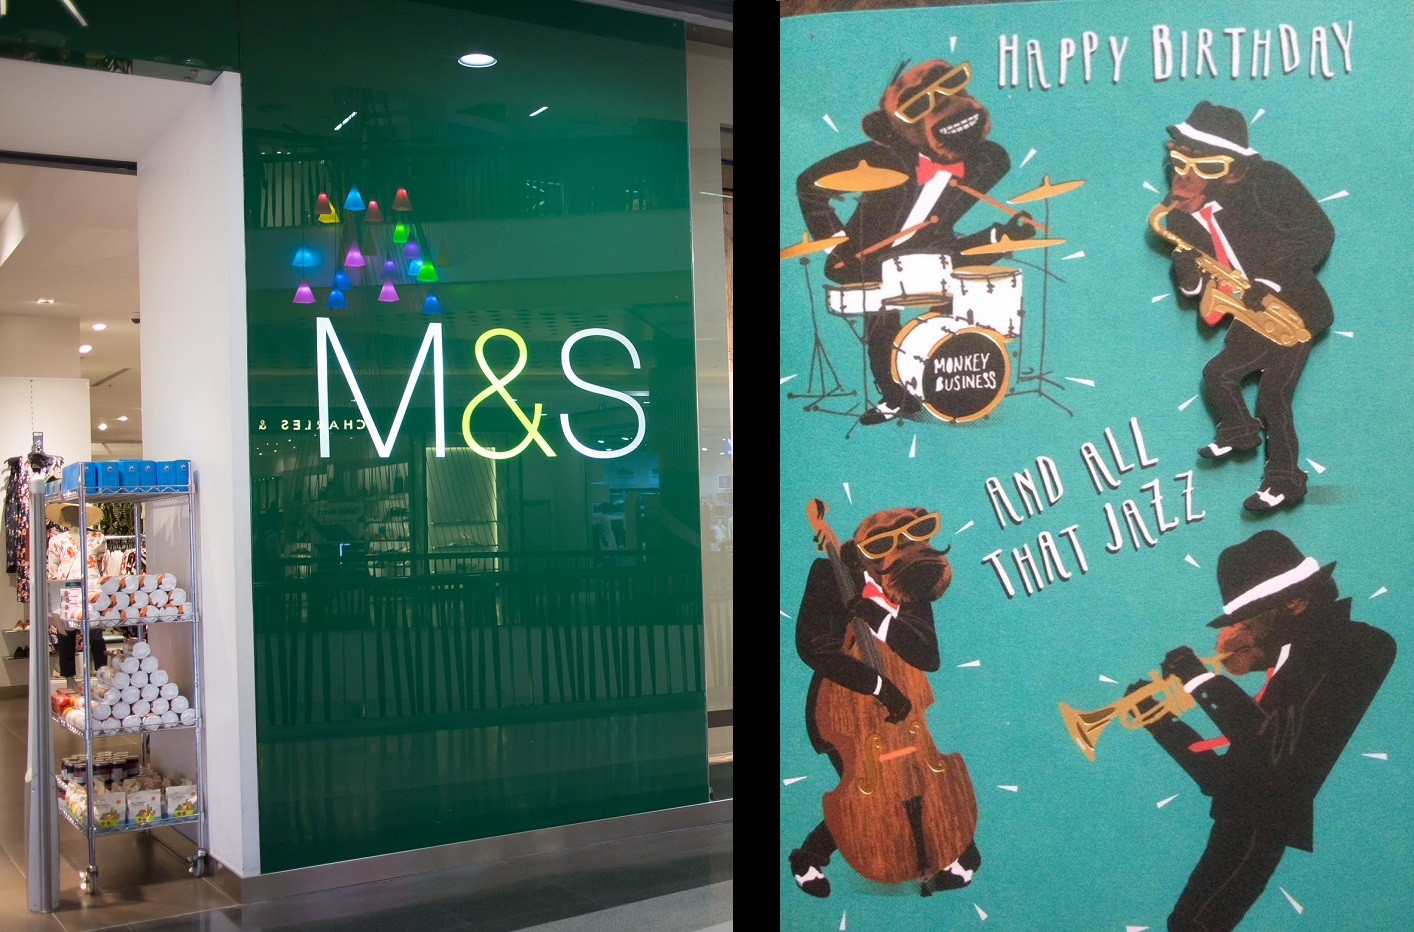 MS Depicts Monkeys As Jazz Musicians In Racially Insensitive Birthday Card